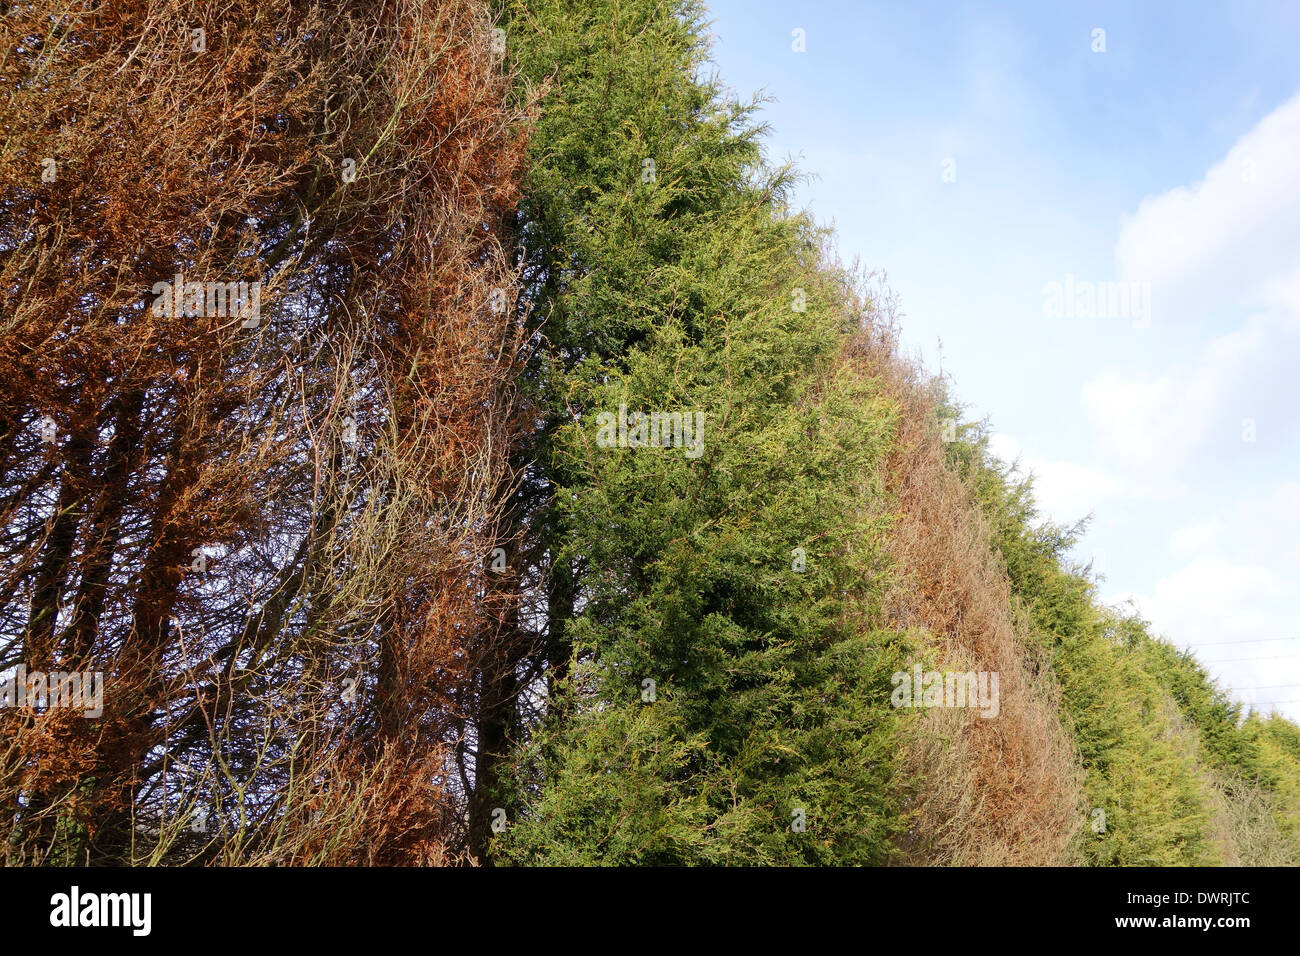 Phytophthora Tree Disease in a Line of Conifers, UK - Stock Image